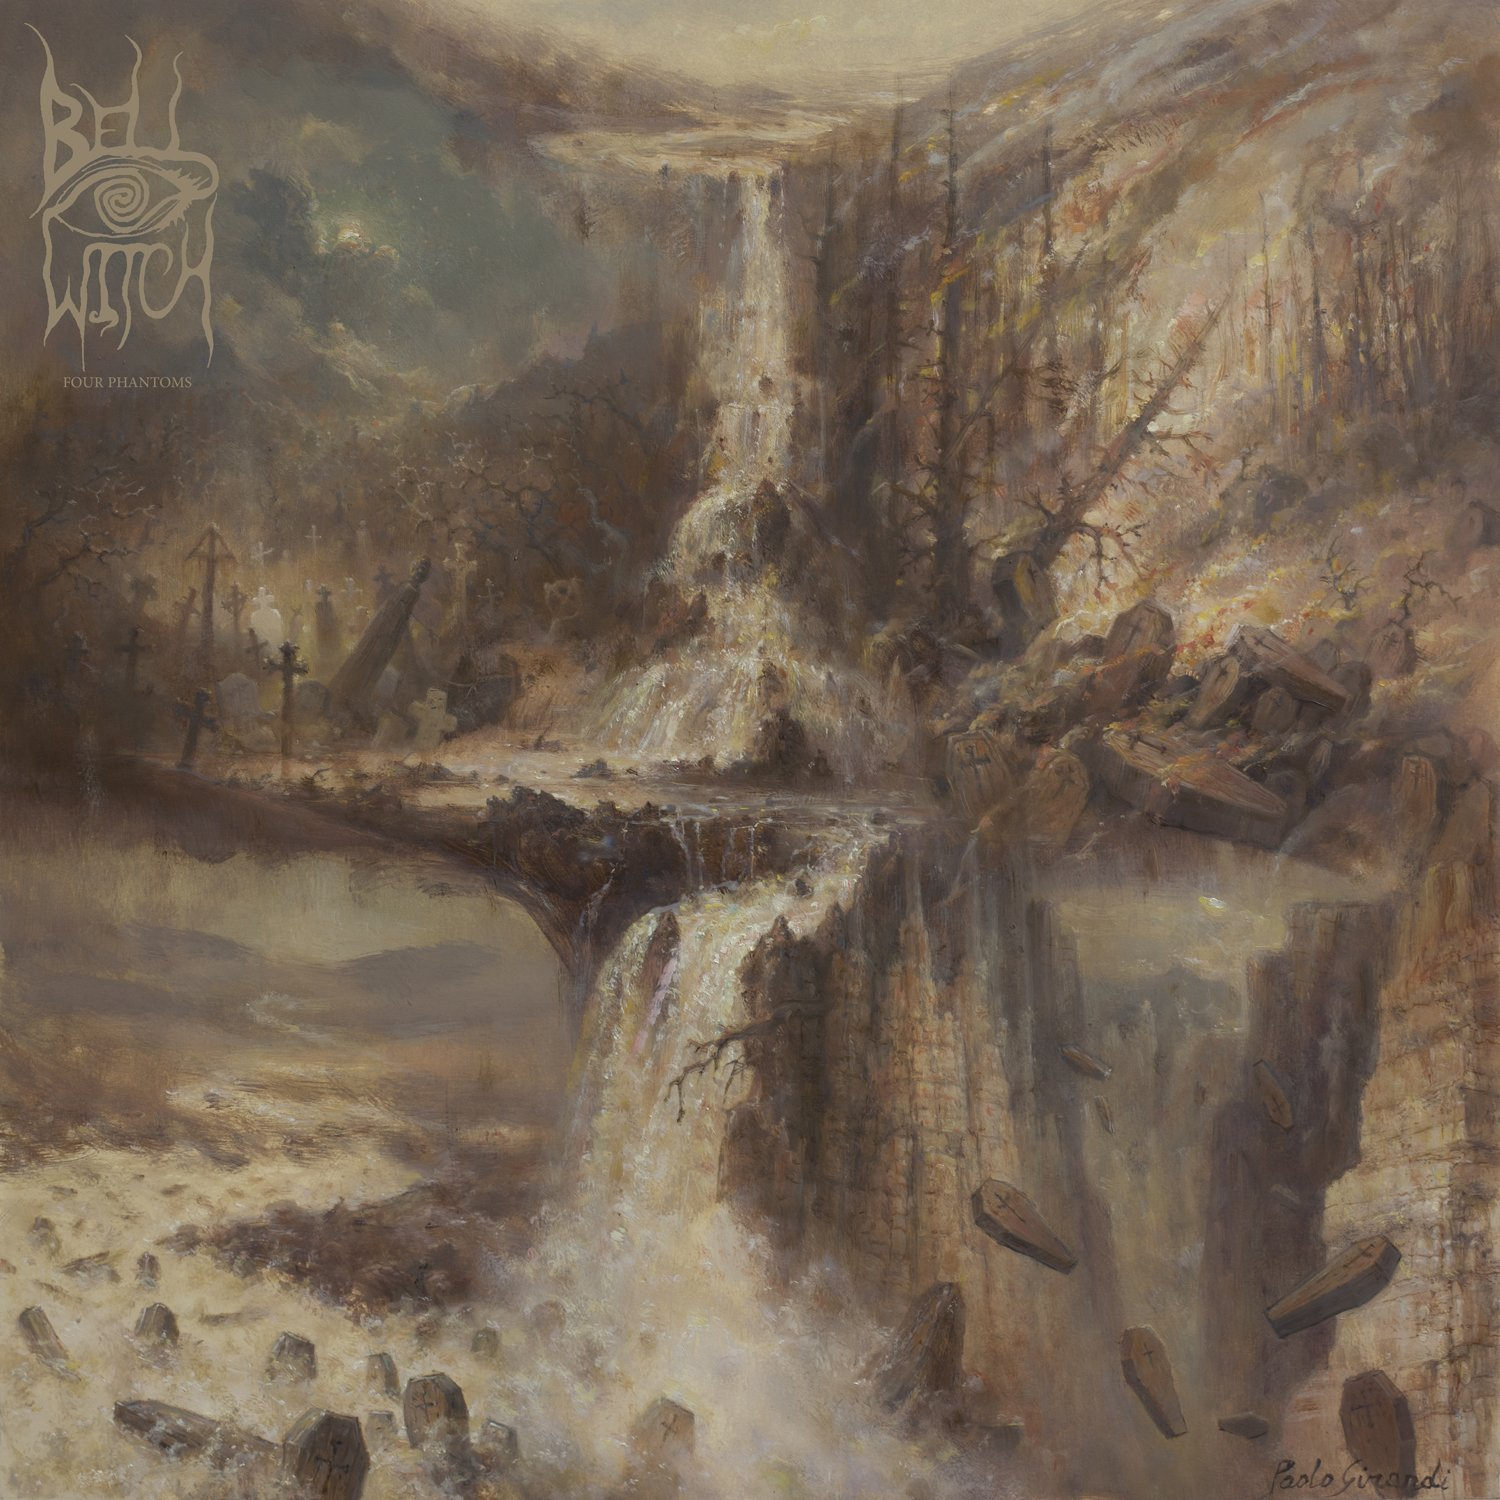 Bell Witch - Four Phantoms (2015) [FLAC] Download